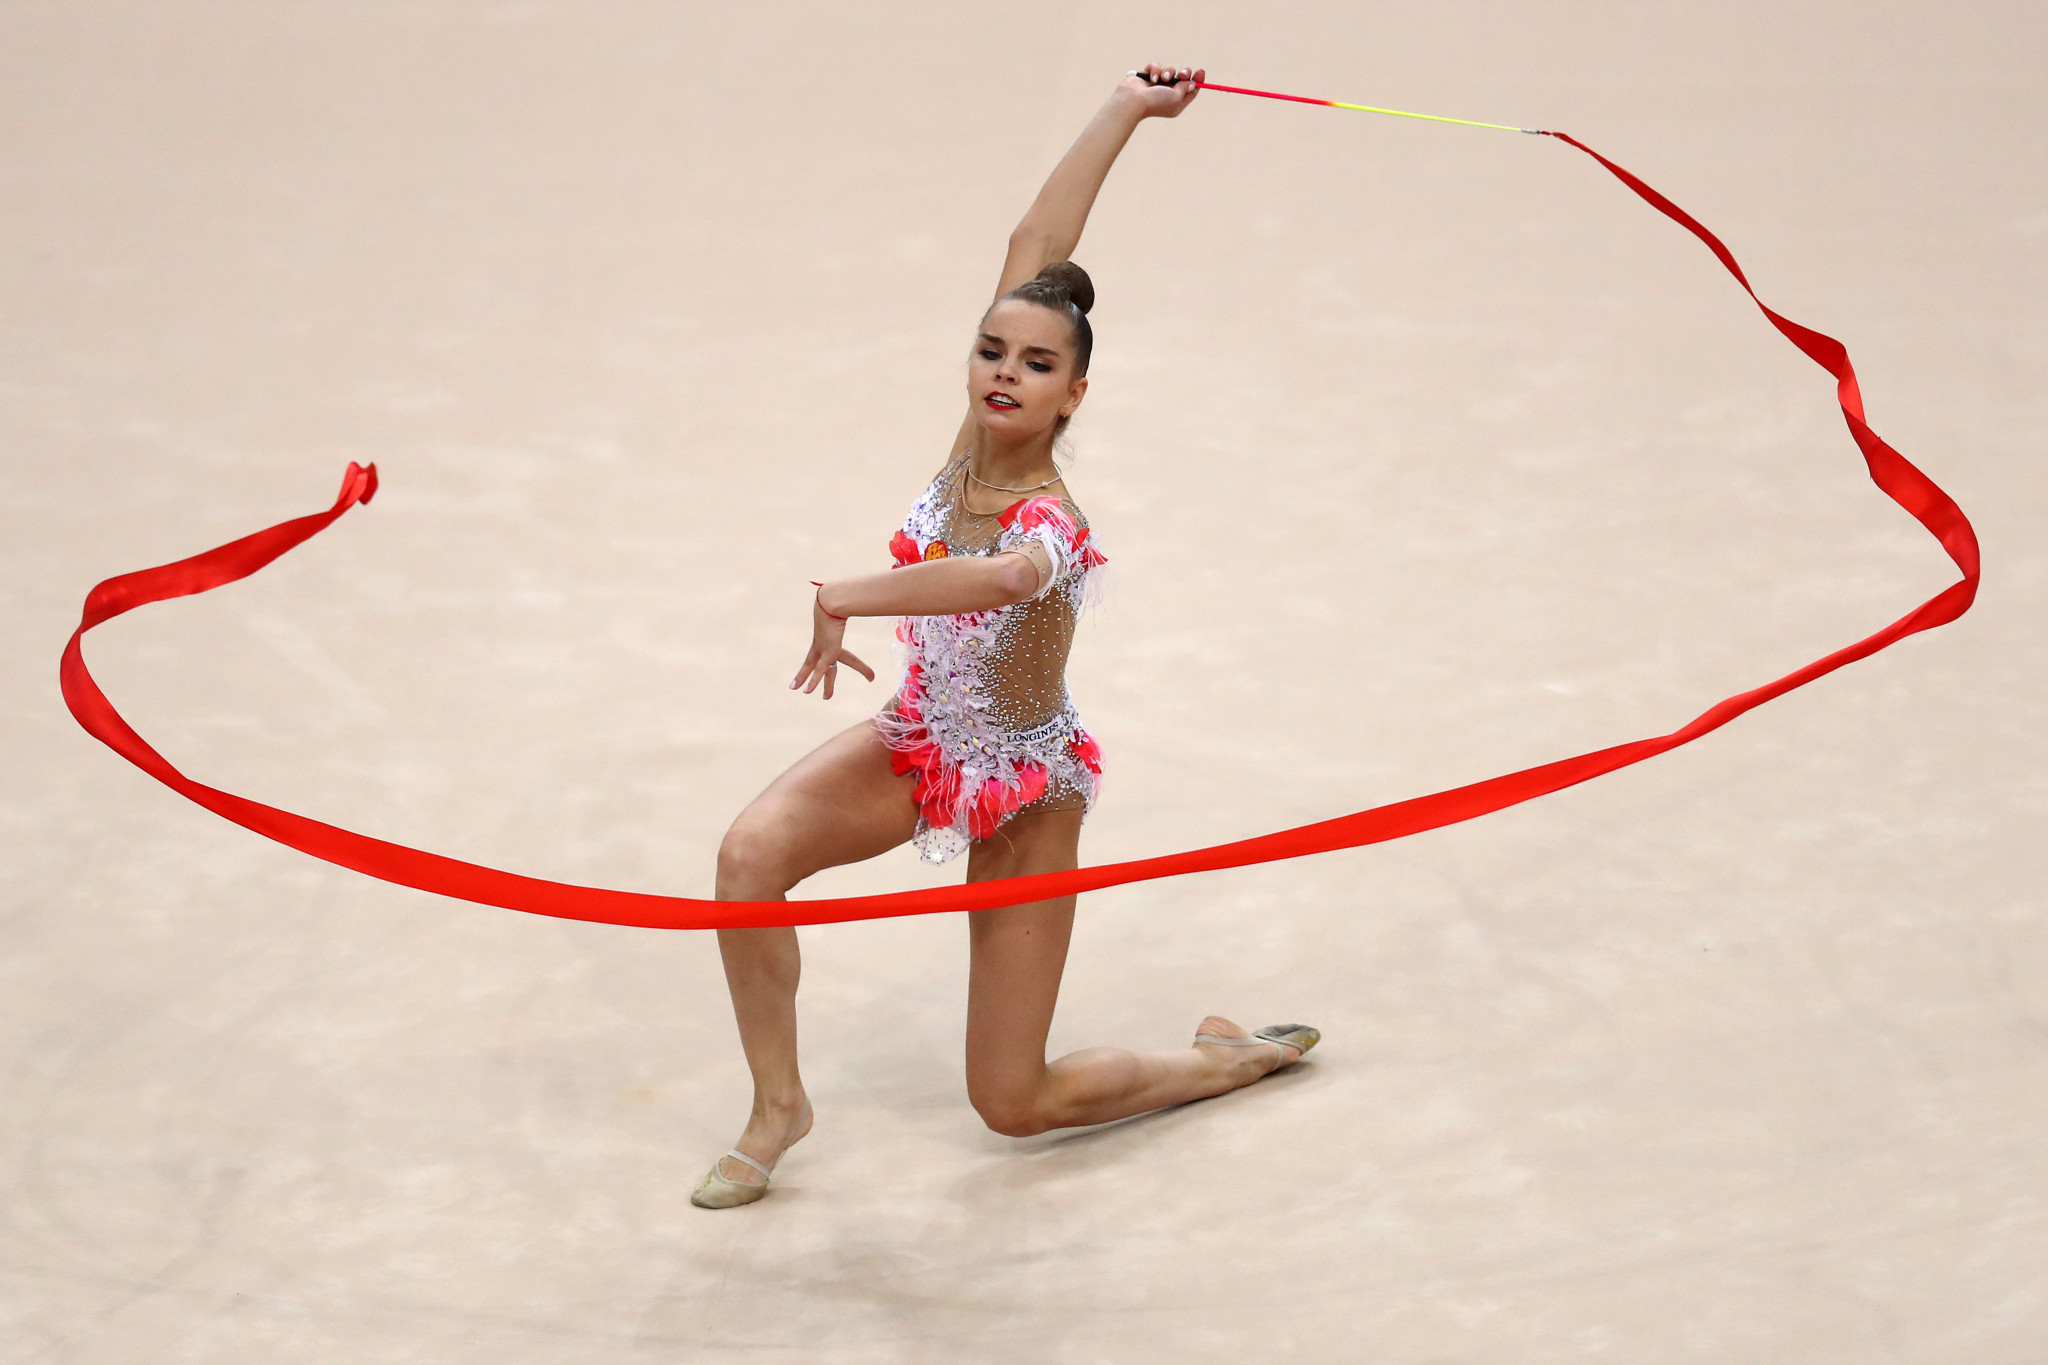 Averina continues successful season with all-around gold at FIG World Challenge Cup